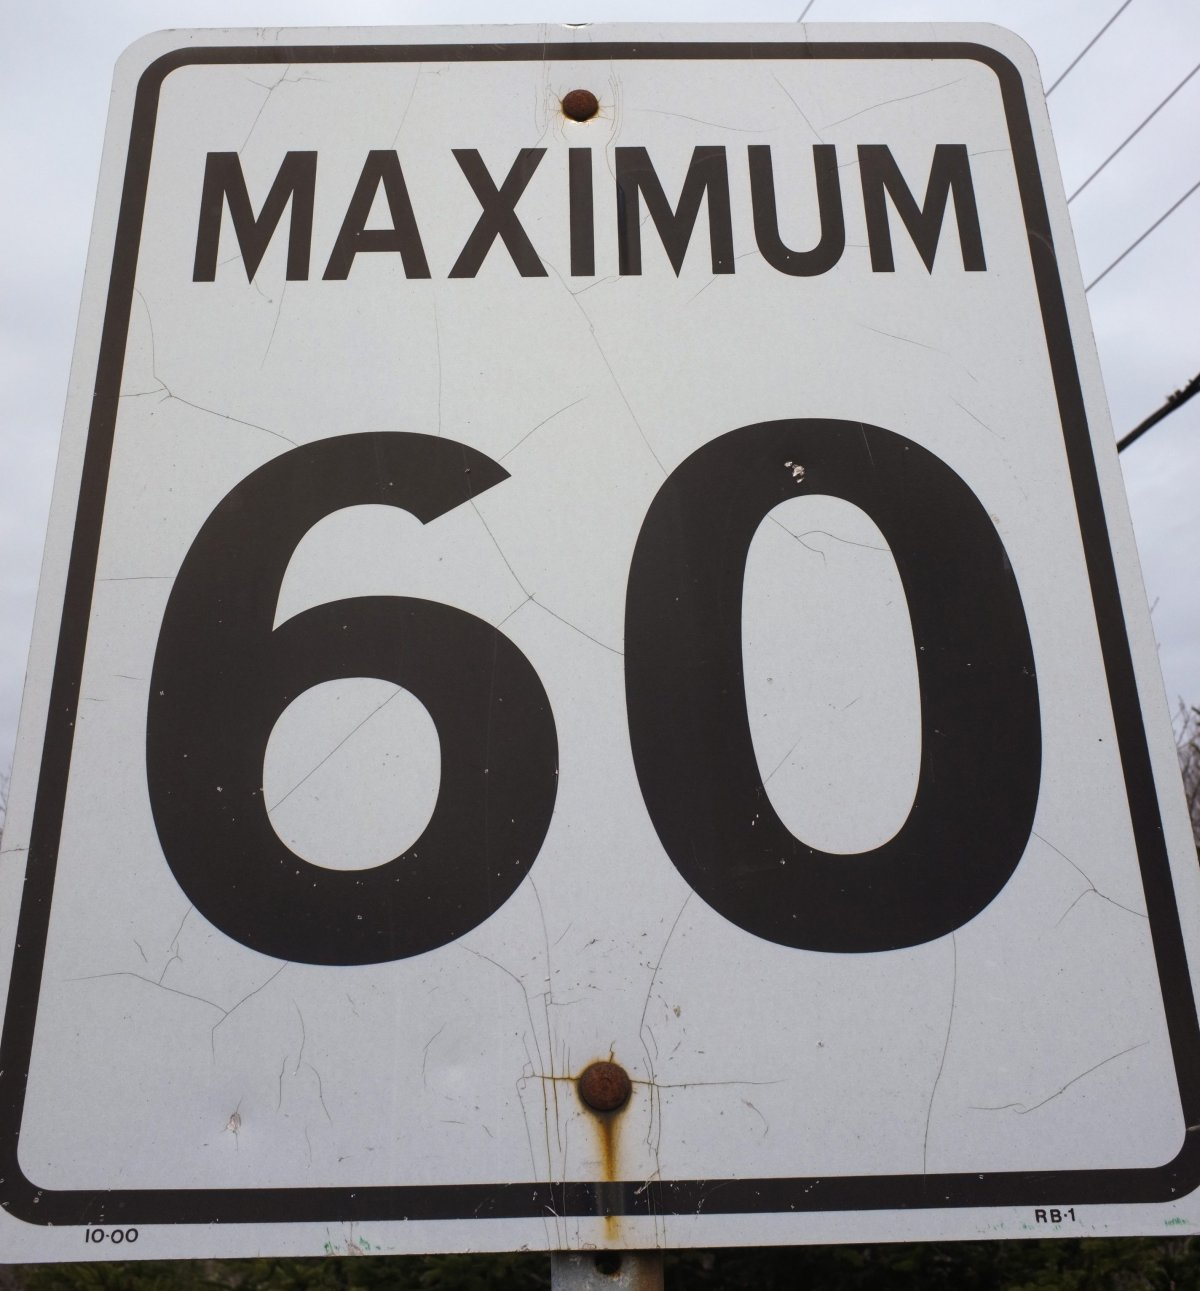 An 18-year-old from Glanbrook has been charged with stunt driving. He's accused of going 132 km/h in a posted 60 km/h zone.